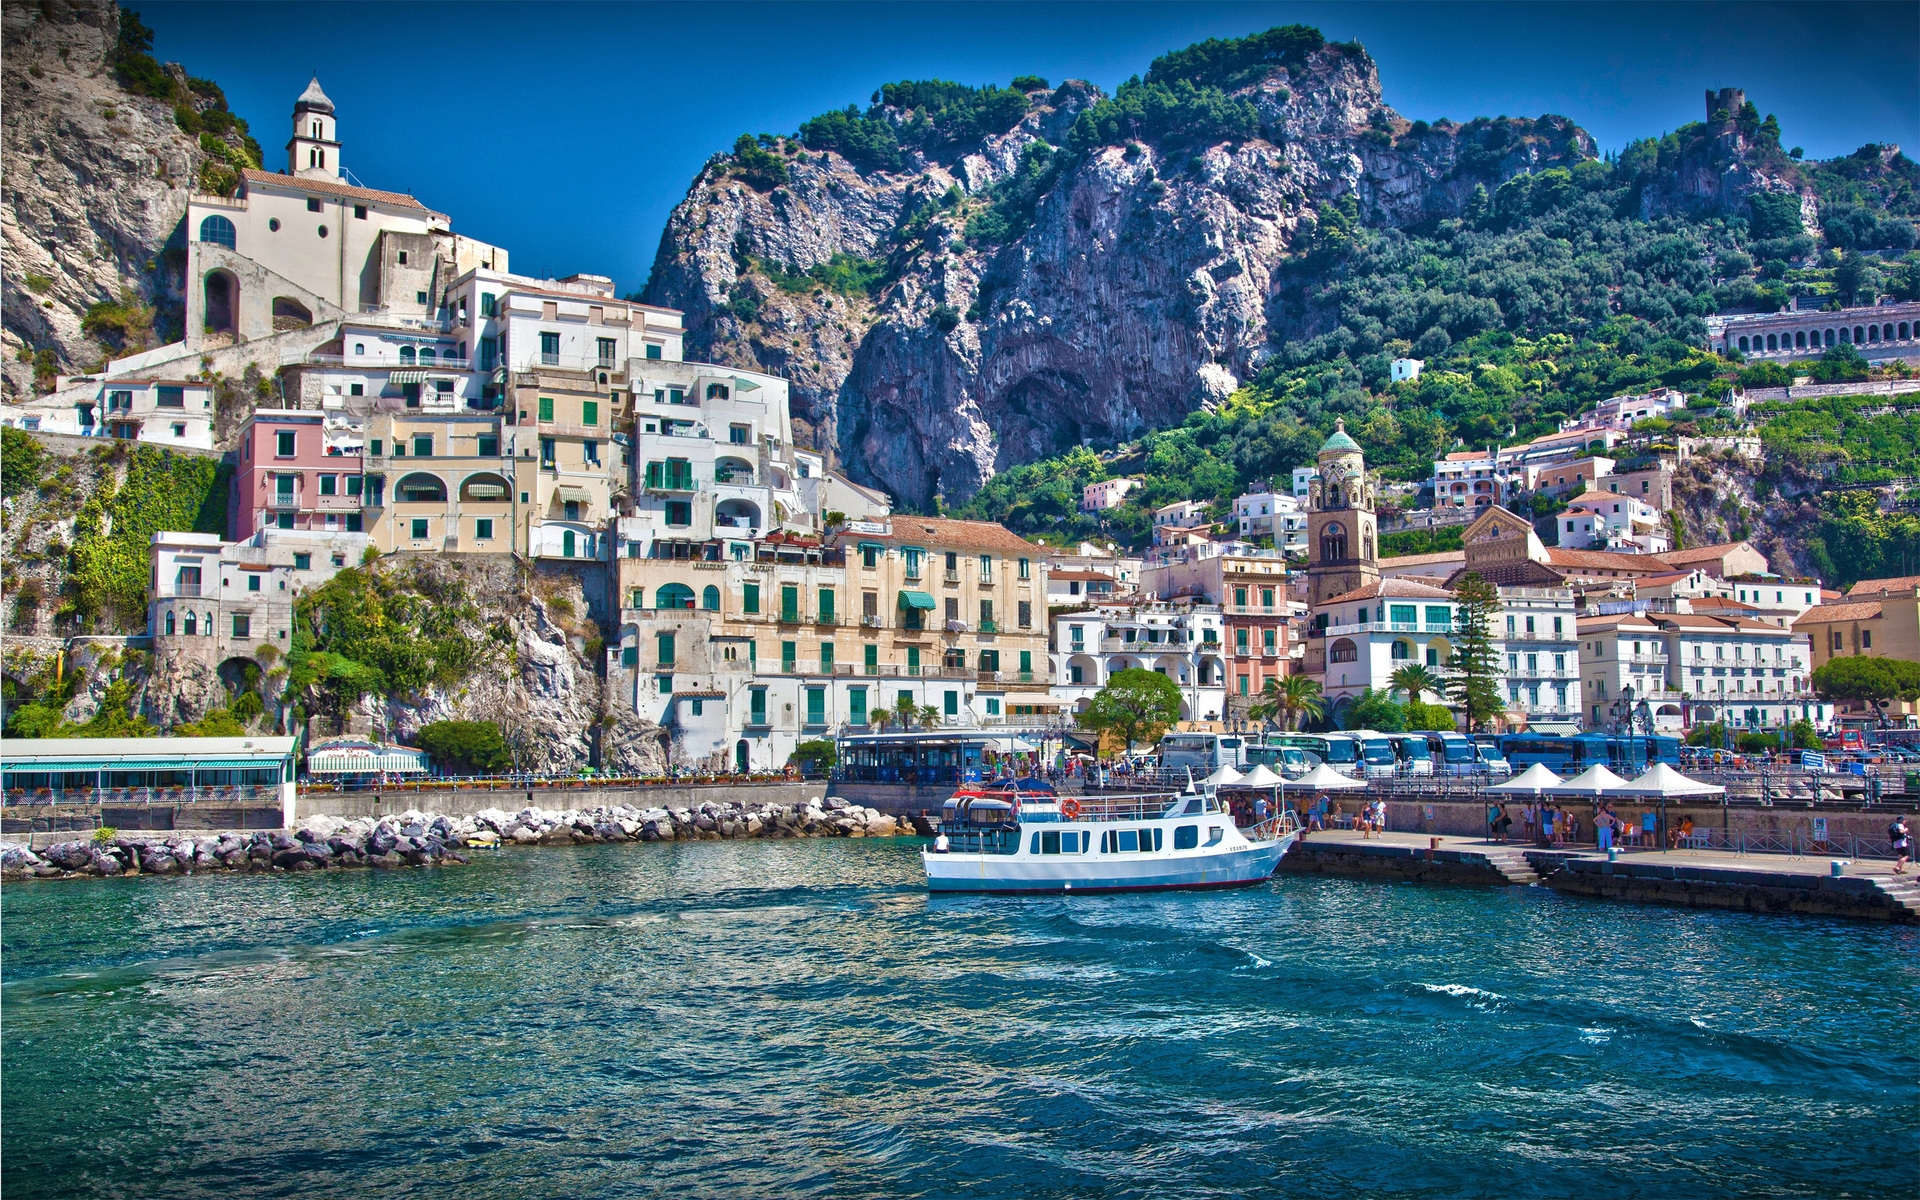 Wallpapers Of Italy Wallpaper Italy City Amalfi Boats Sea Houses Mountains